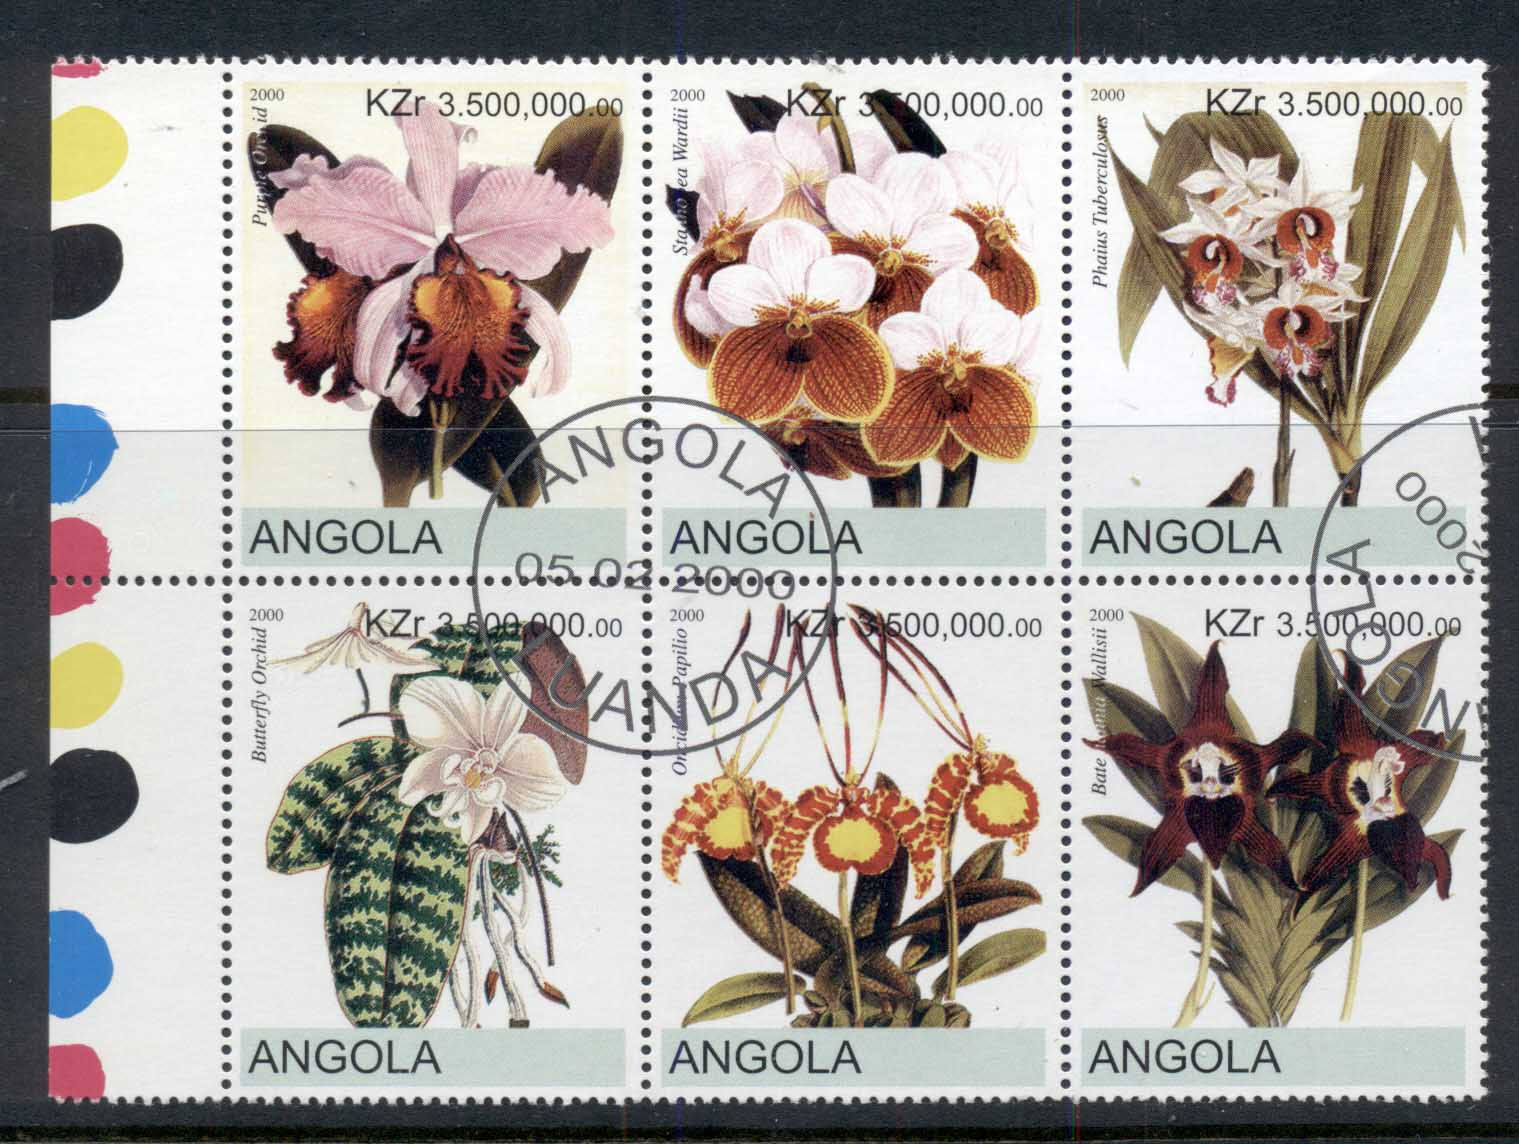 Angola 2000 Flowers, Orchids blk6 (rebel Issue) CTO